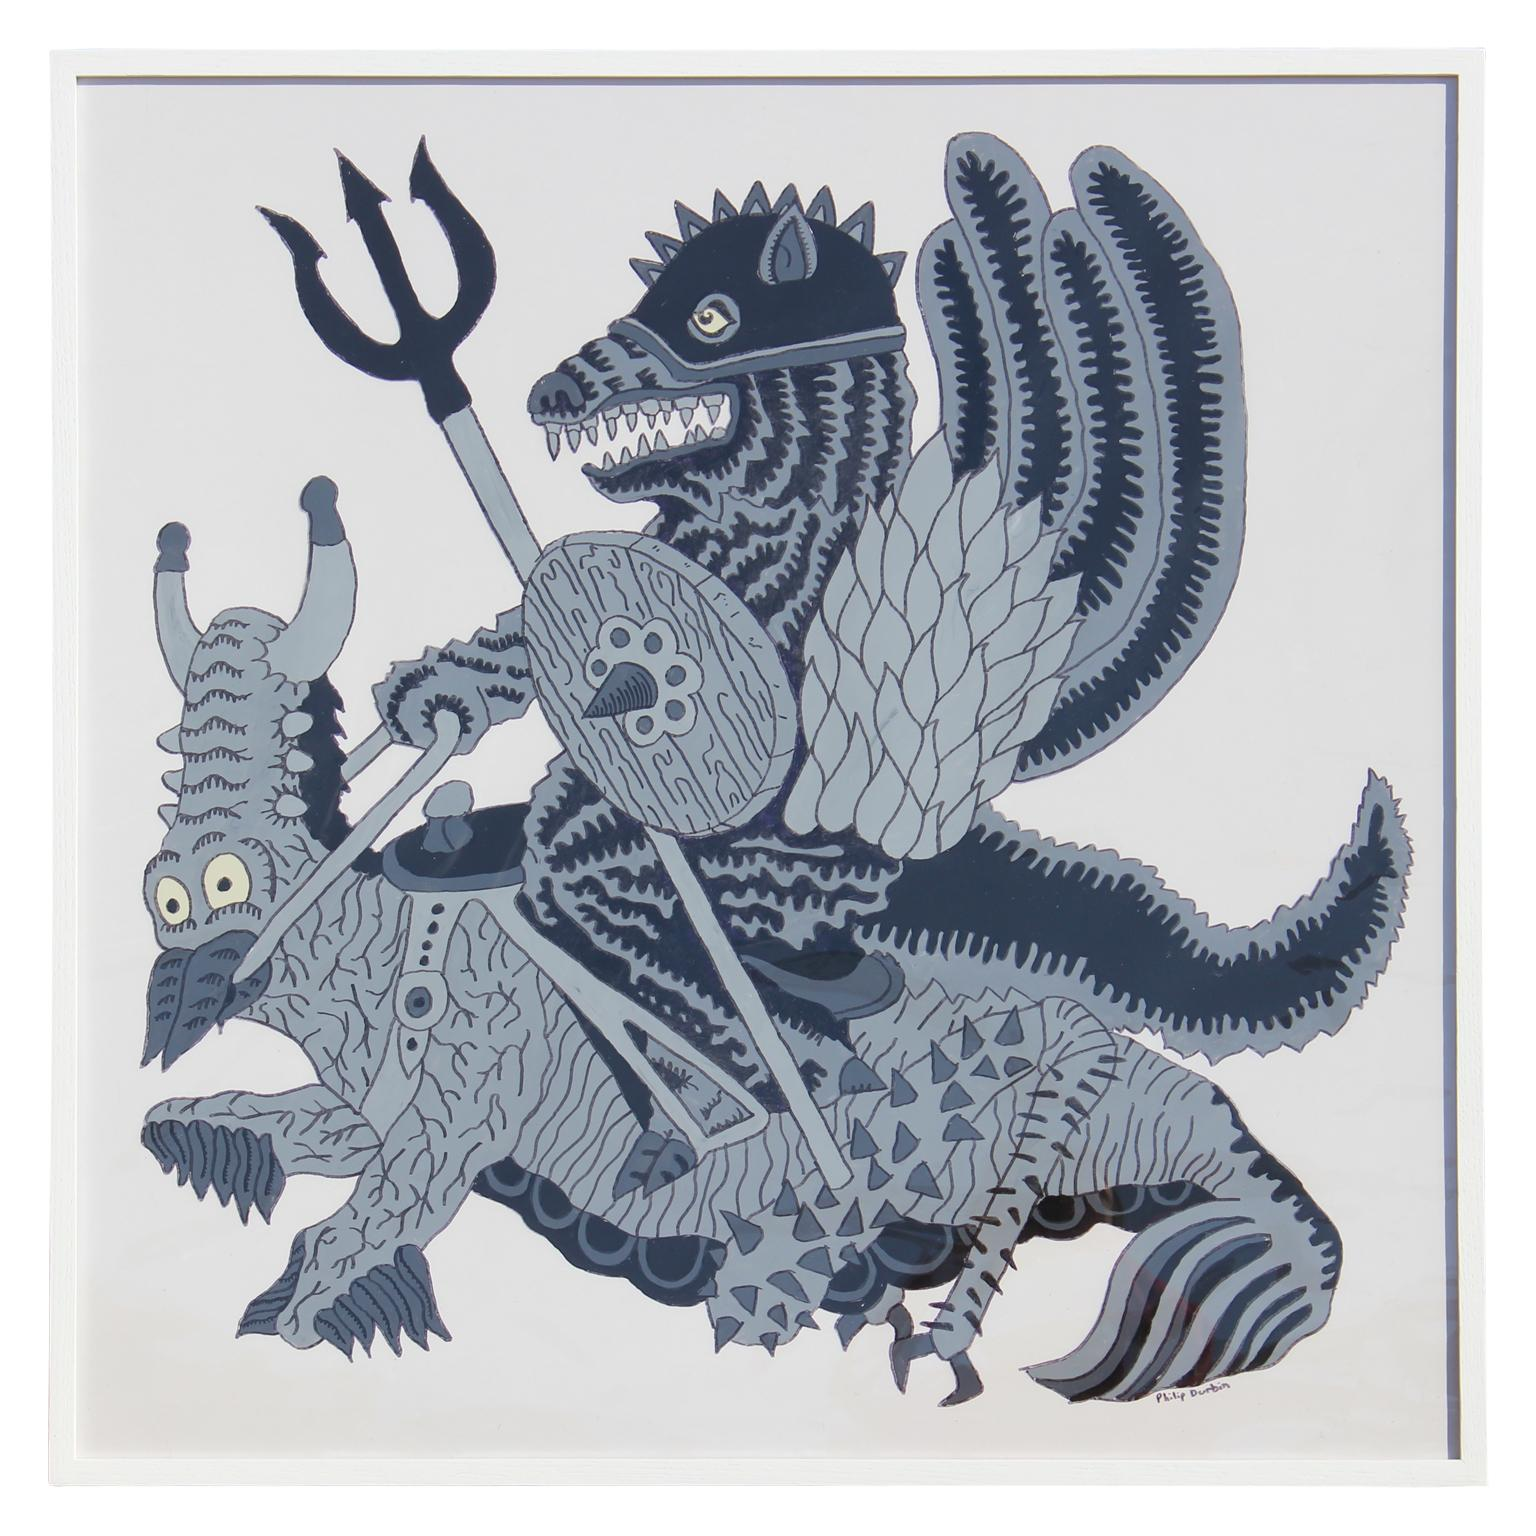 Contemporary Surrealist Mythical Creatures